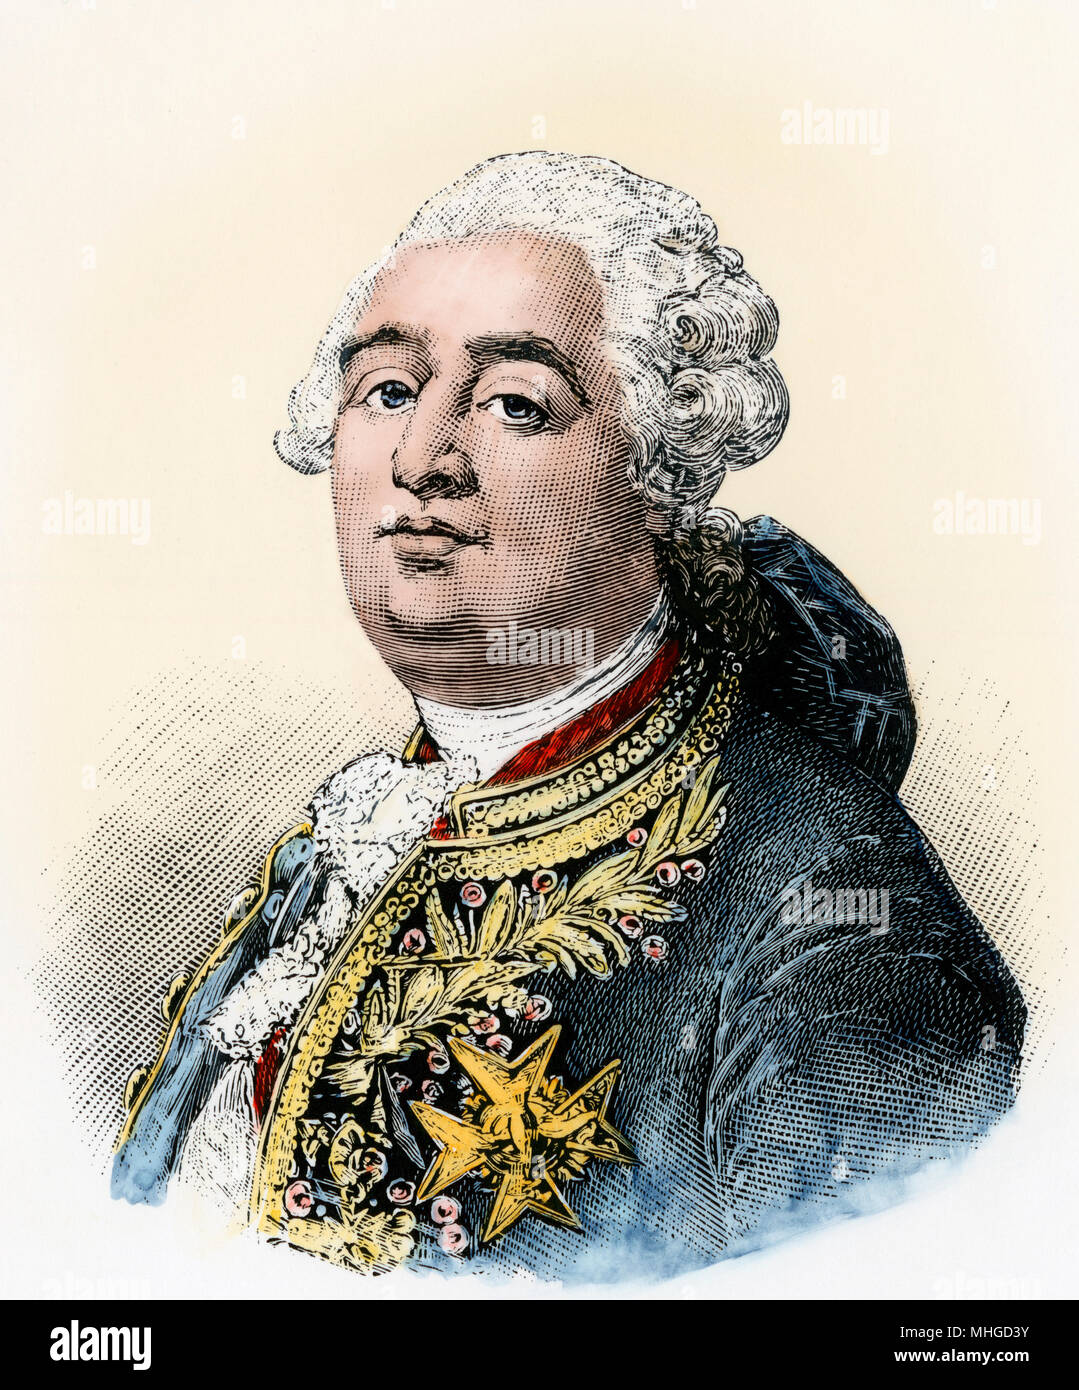 Louis XVI, King of France during the French Revolution. Hand-colored engraving Stock Photo